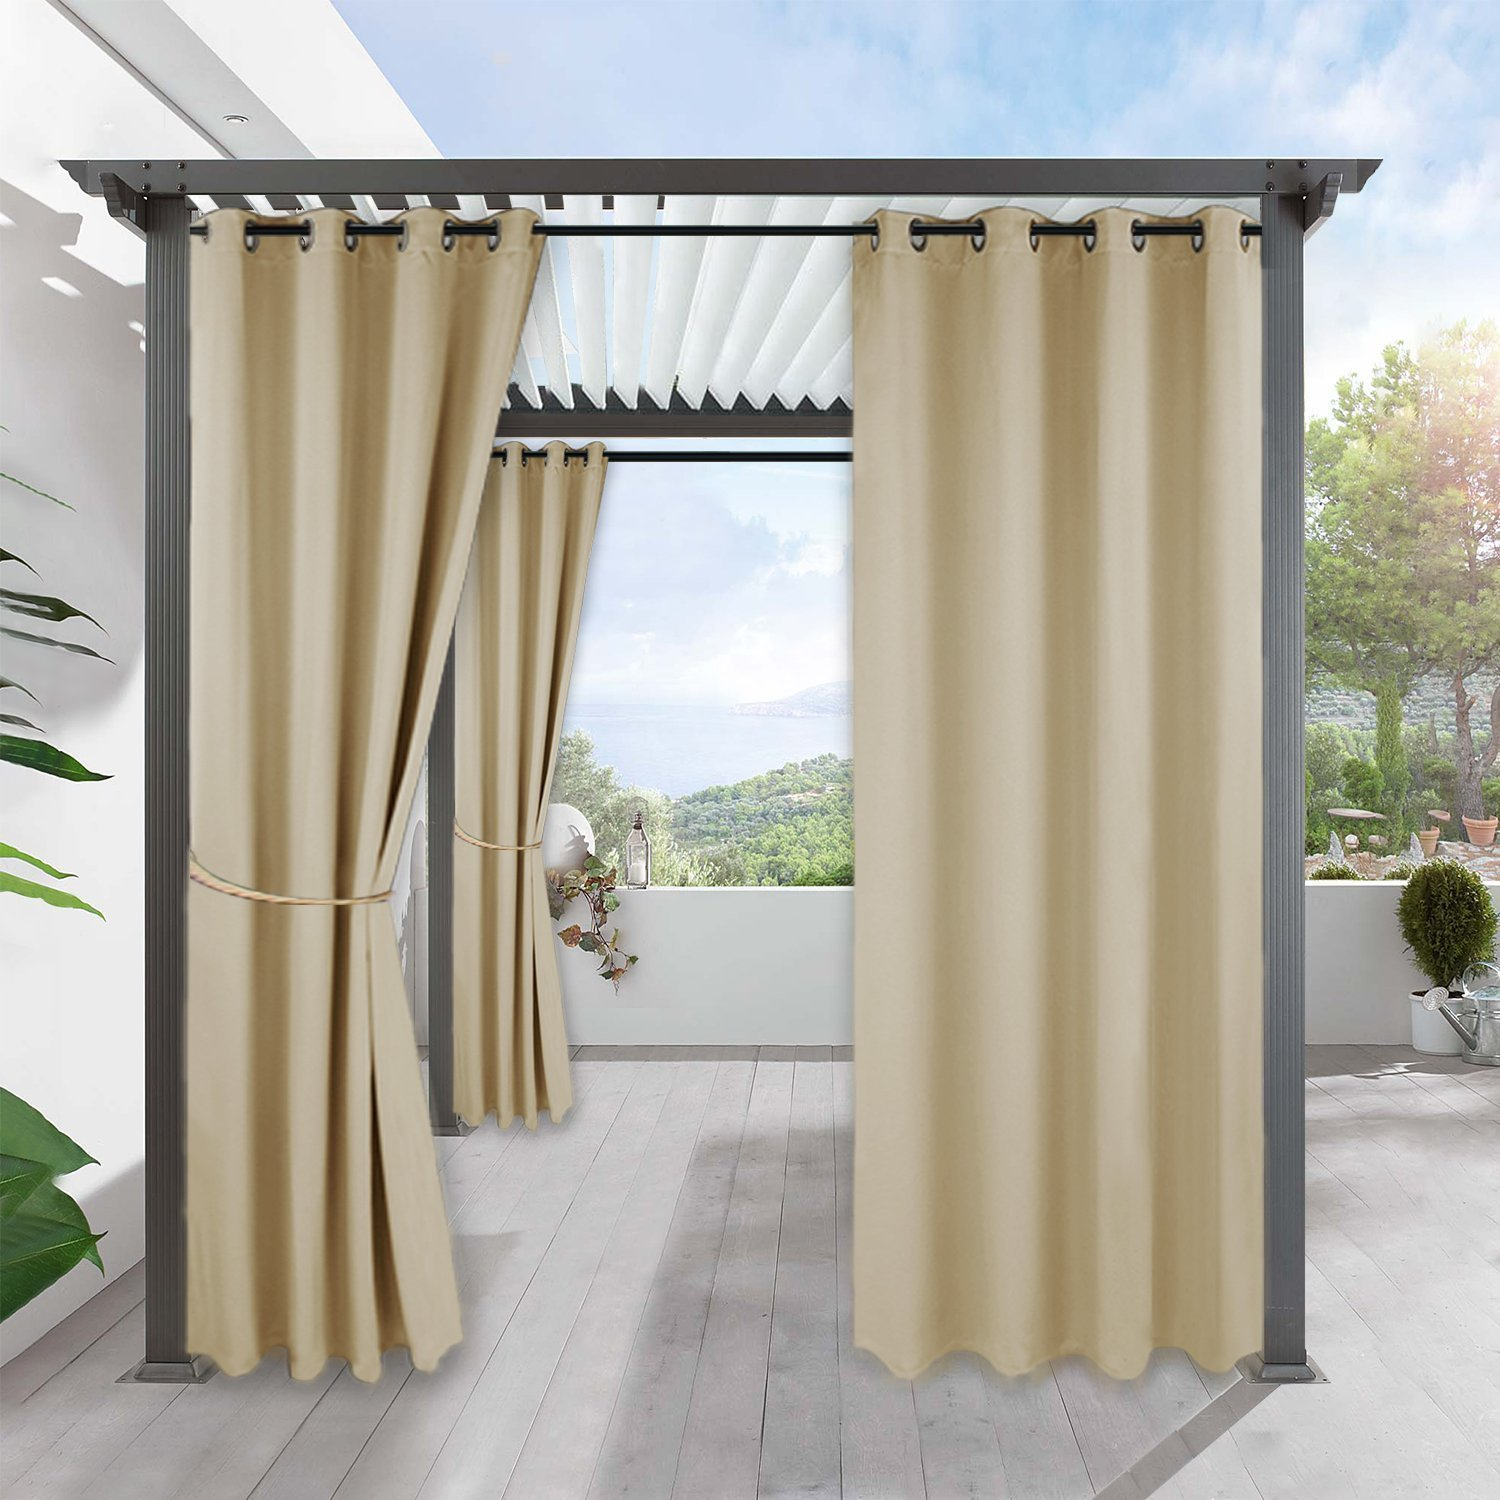 RYB HOME Outdoor Patio Curtains - Heavy Weighted Porch Waterproof Curtains Courtyard Outside Shade for Farmhouse Cabin Pergola Cabana Corridor Terrace, 1 Panel, 52 x 95 inches Long, Biscotti Beige